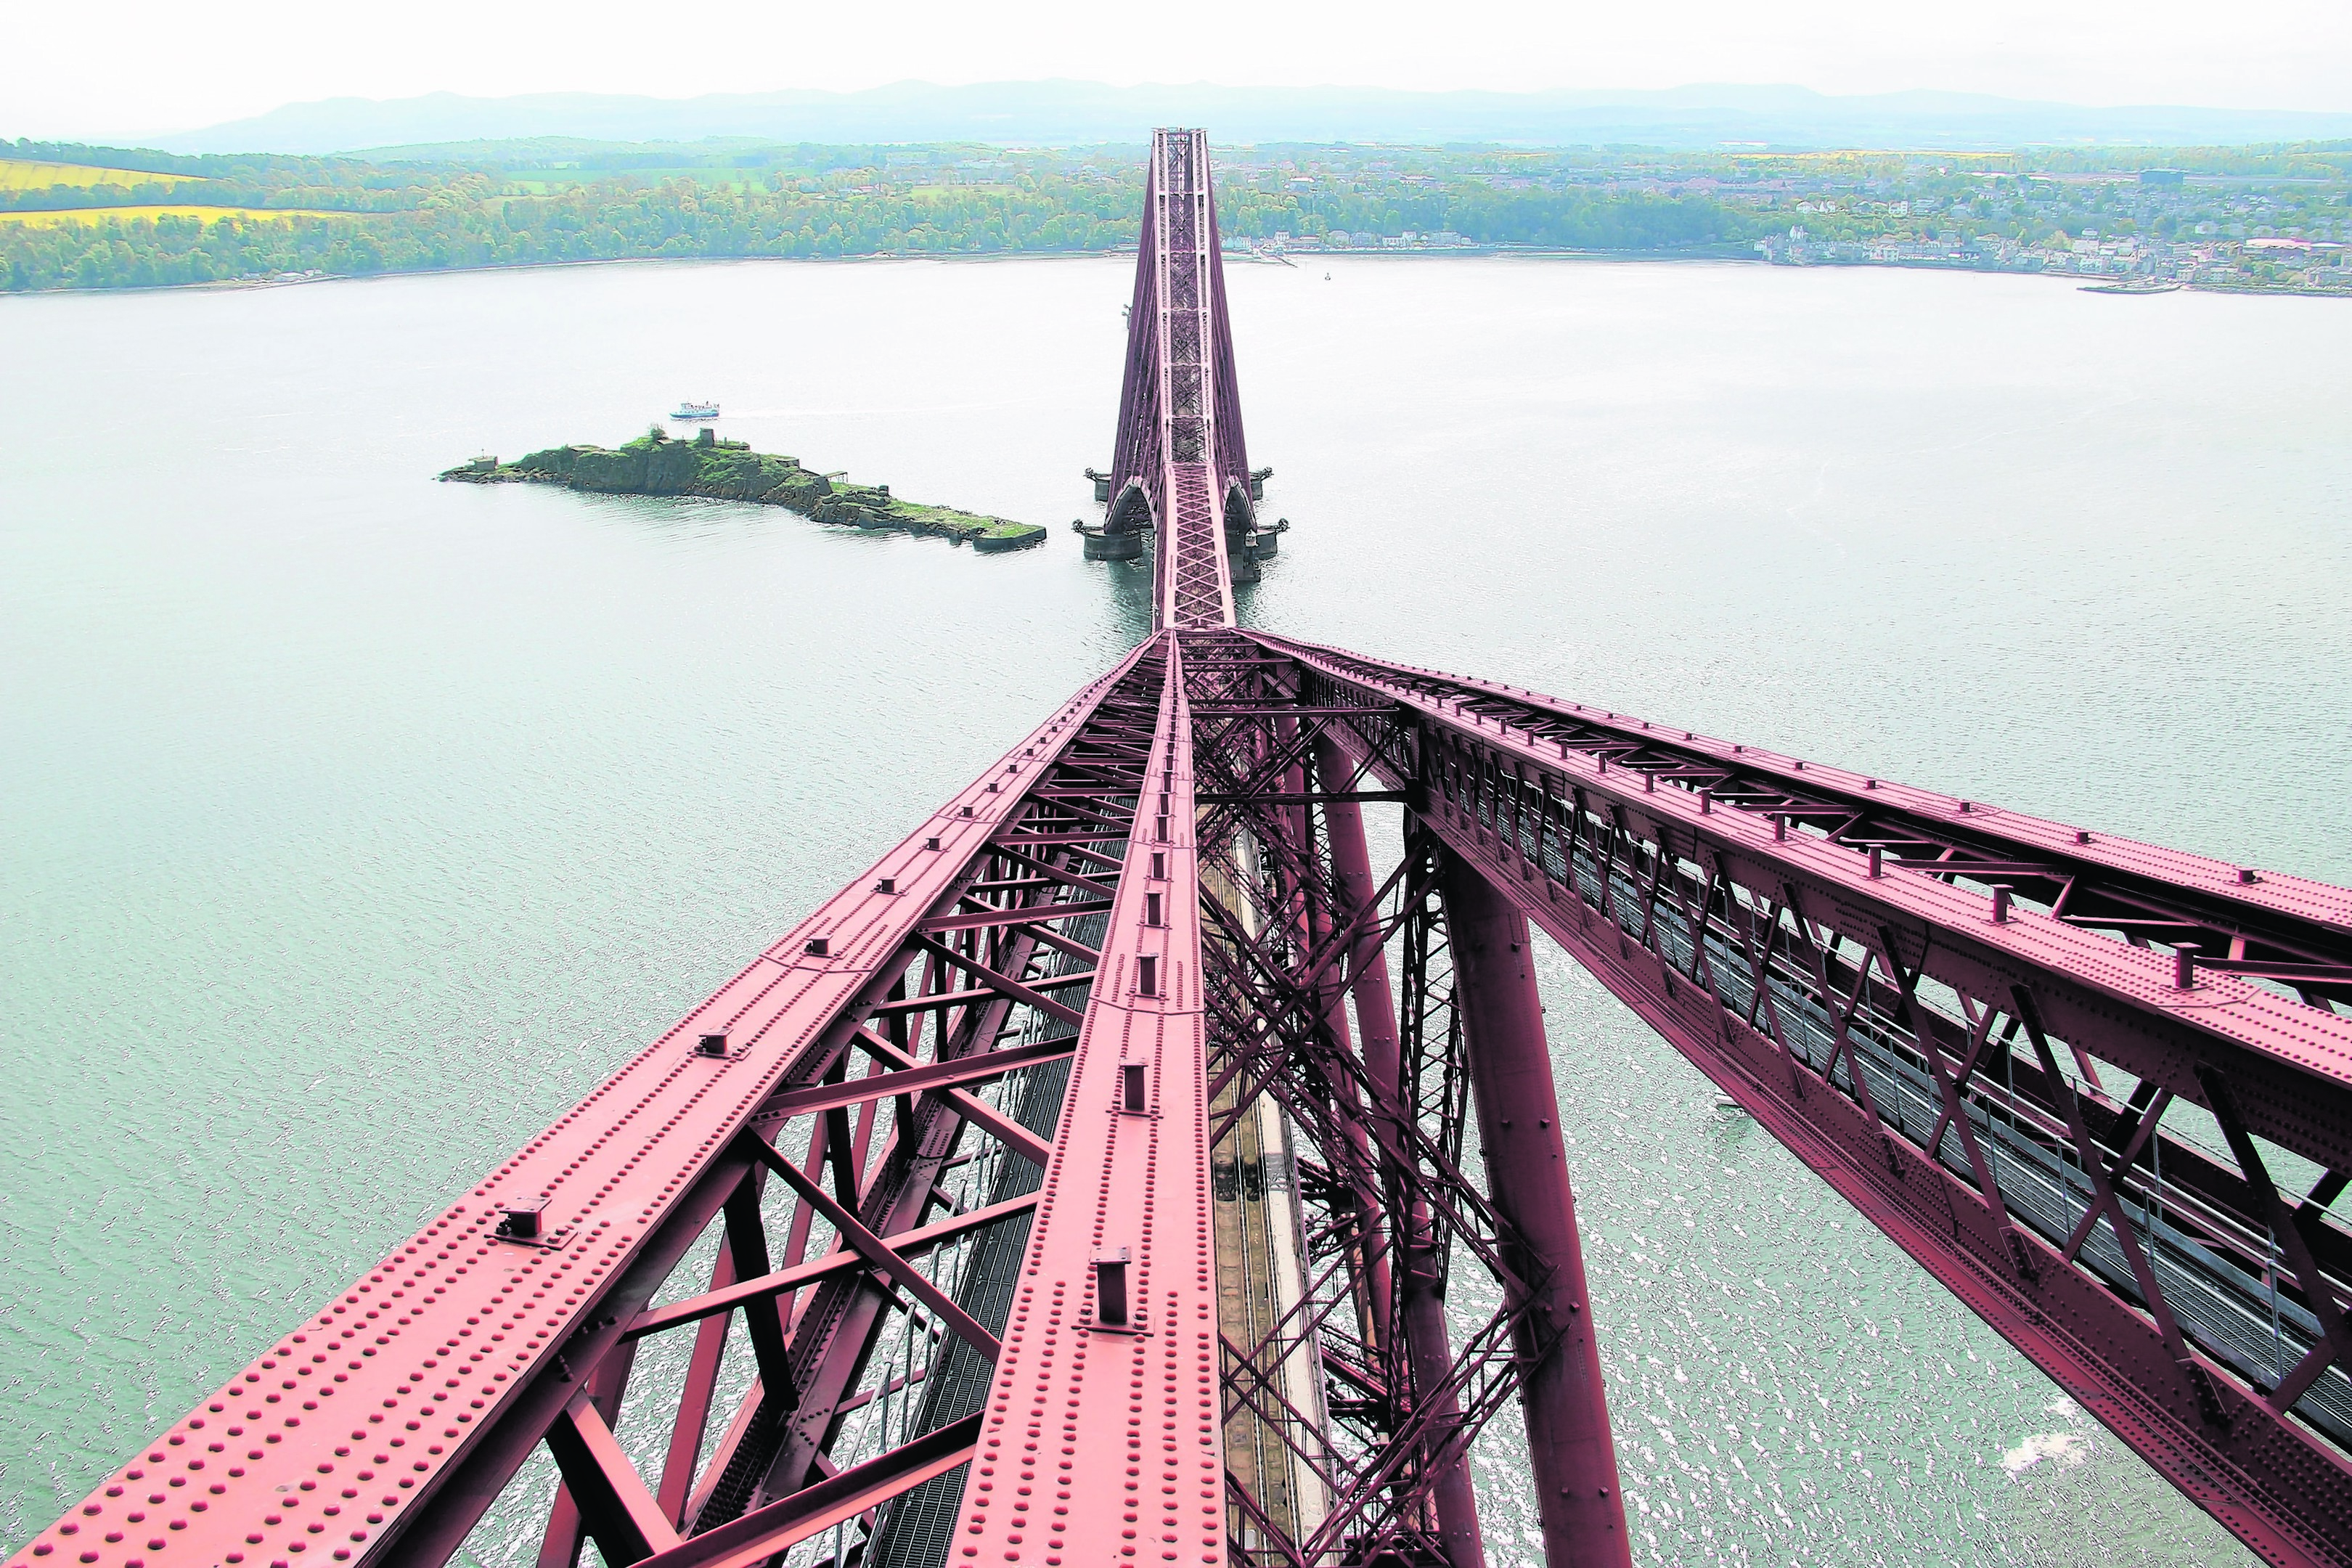 Spectacular views from the top of the Forth Bridge